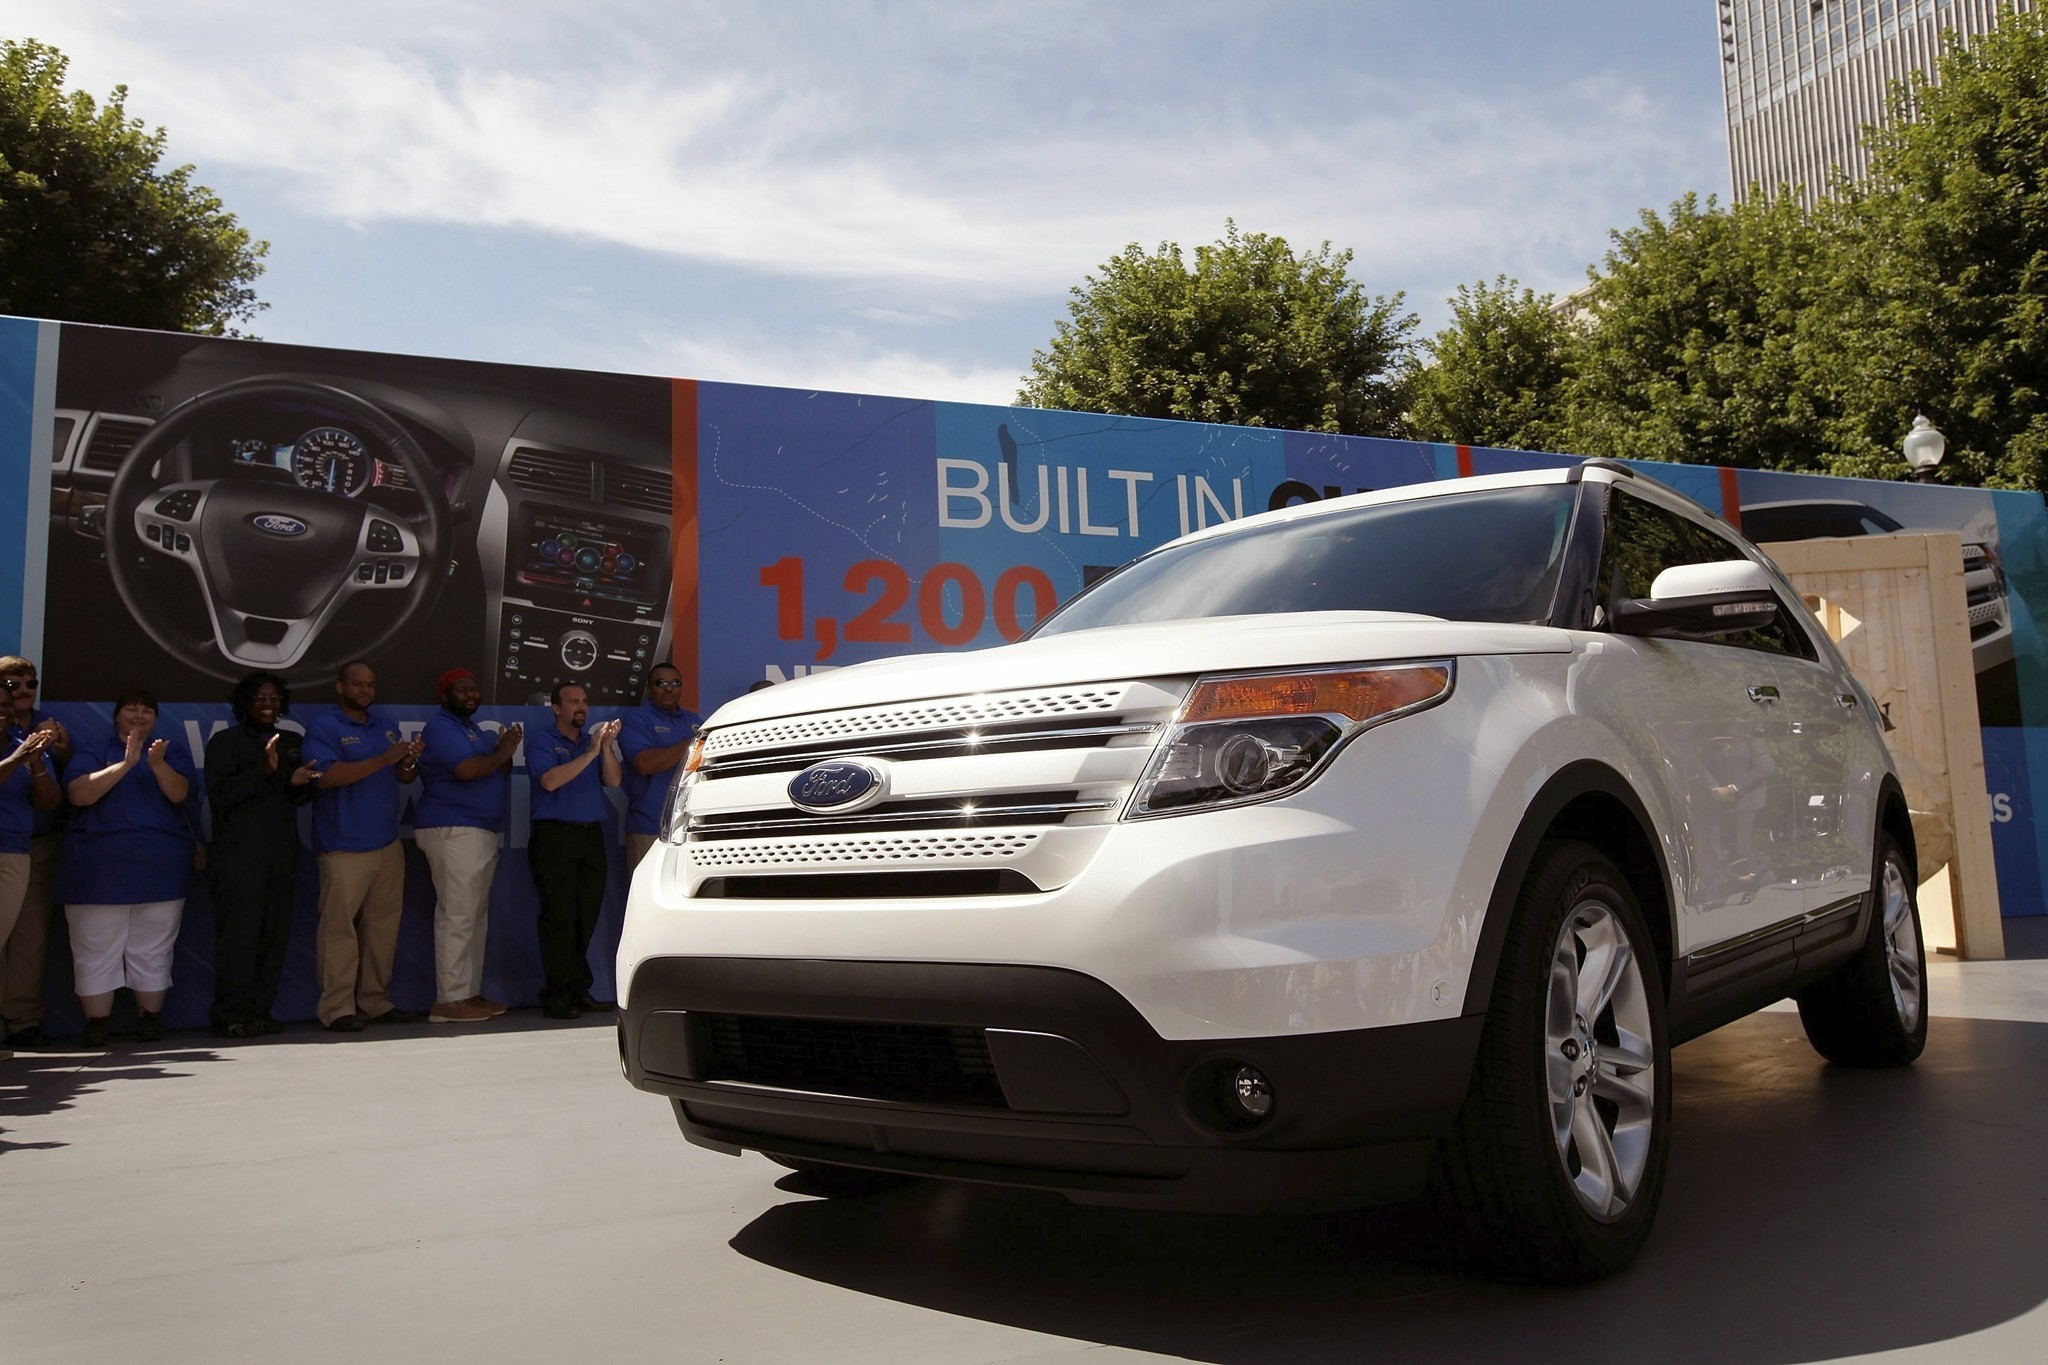 Ford Explorer should be recalled for exhaust fumes, safety group says -  Chicago Tribune